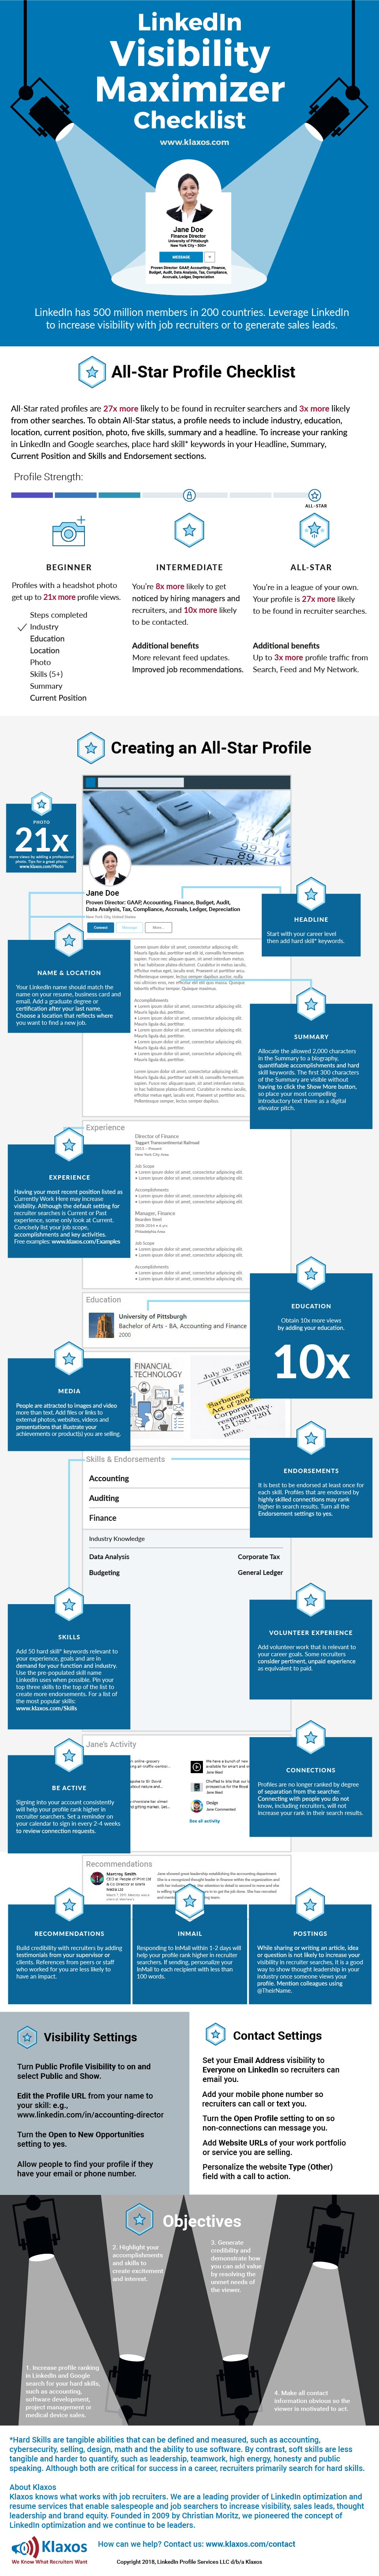 LinkedIn Profile Writing Checklist Infographic